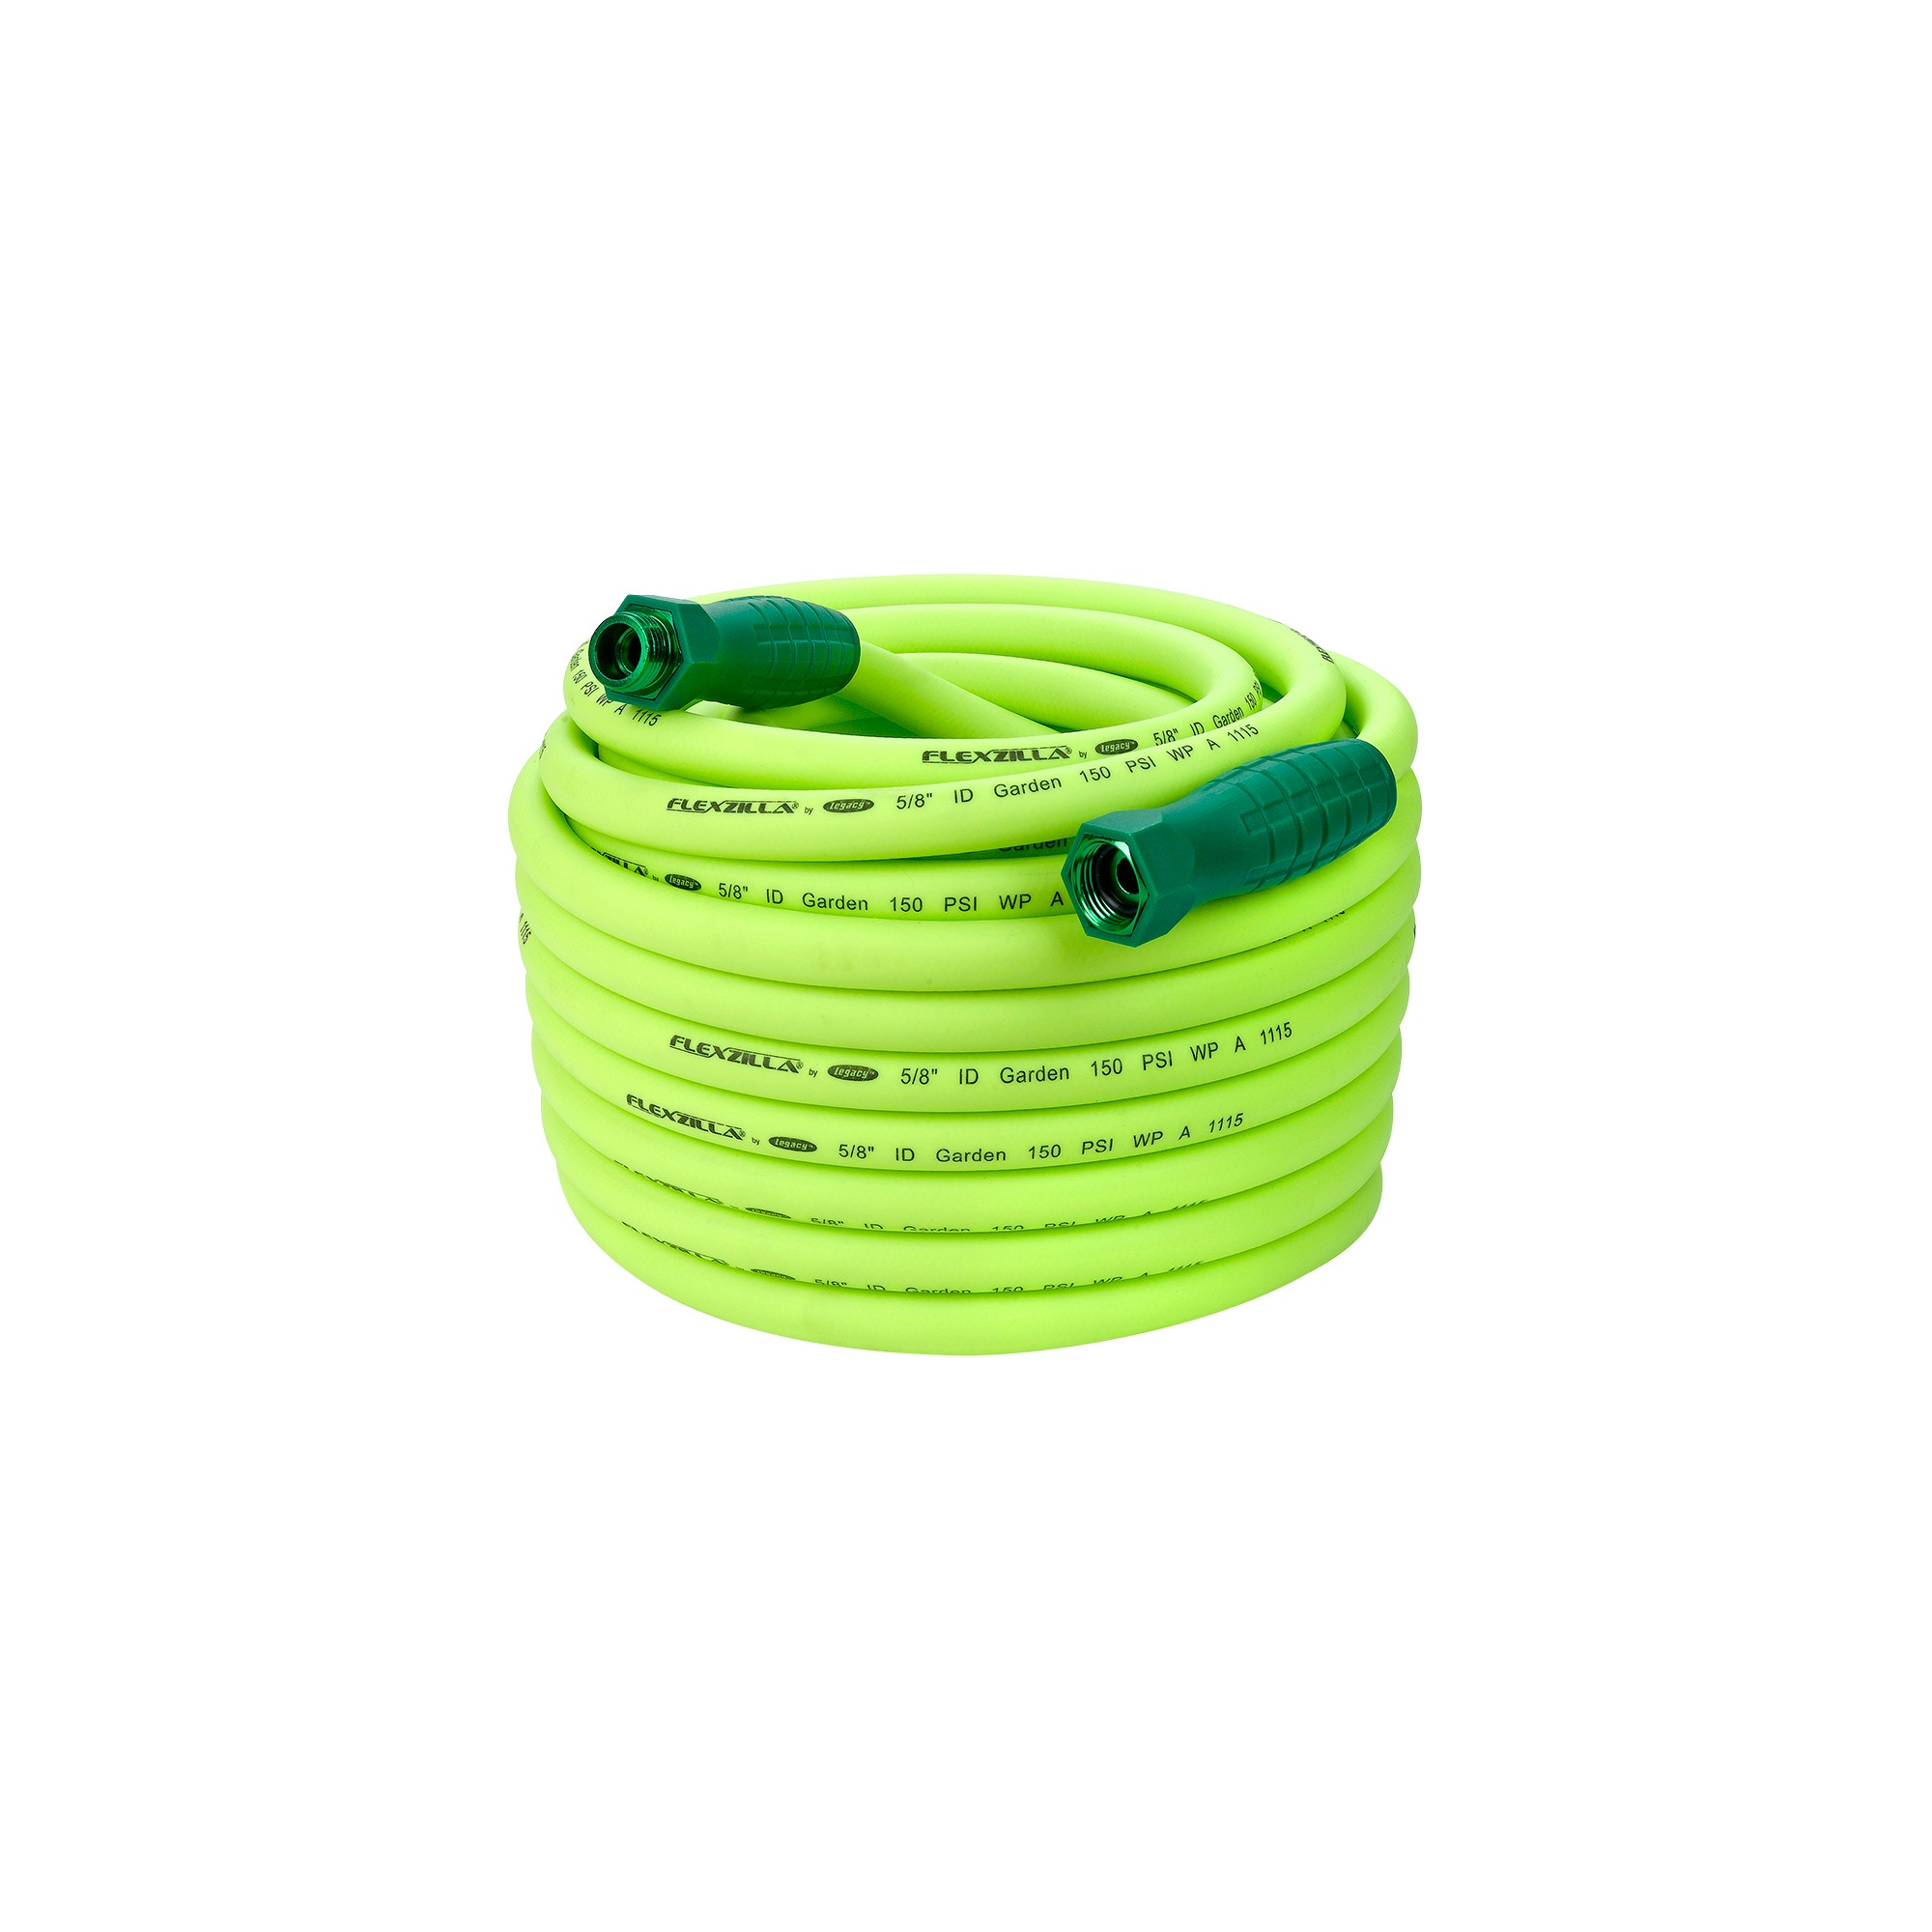 Garden Lead In Hose with Swivelgrip Connections 5/8 x 100